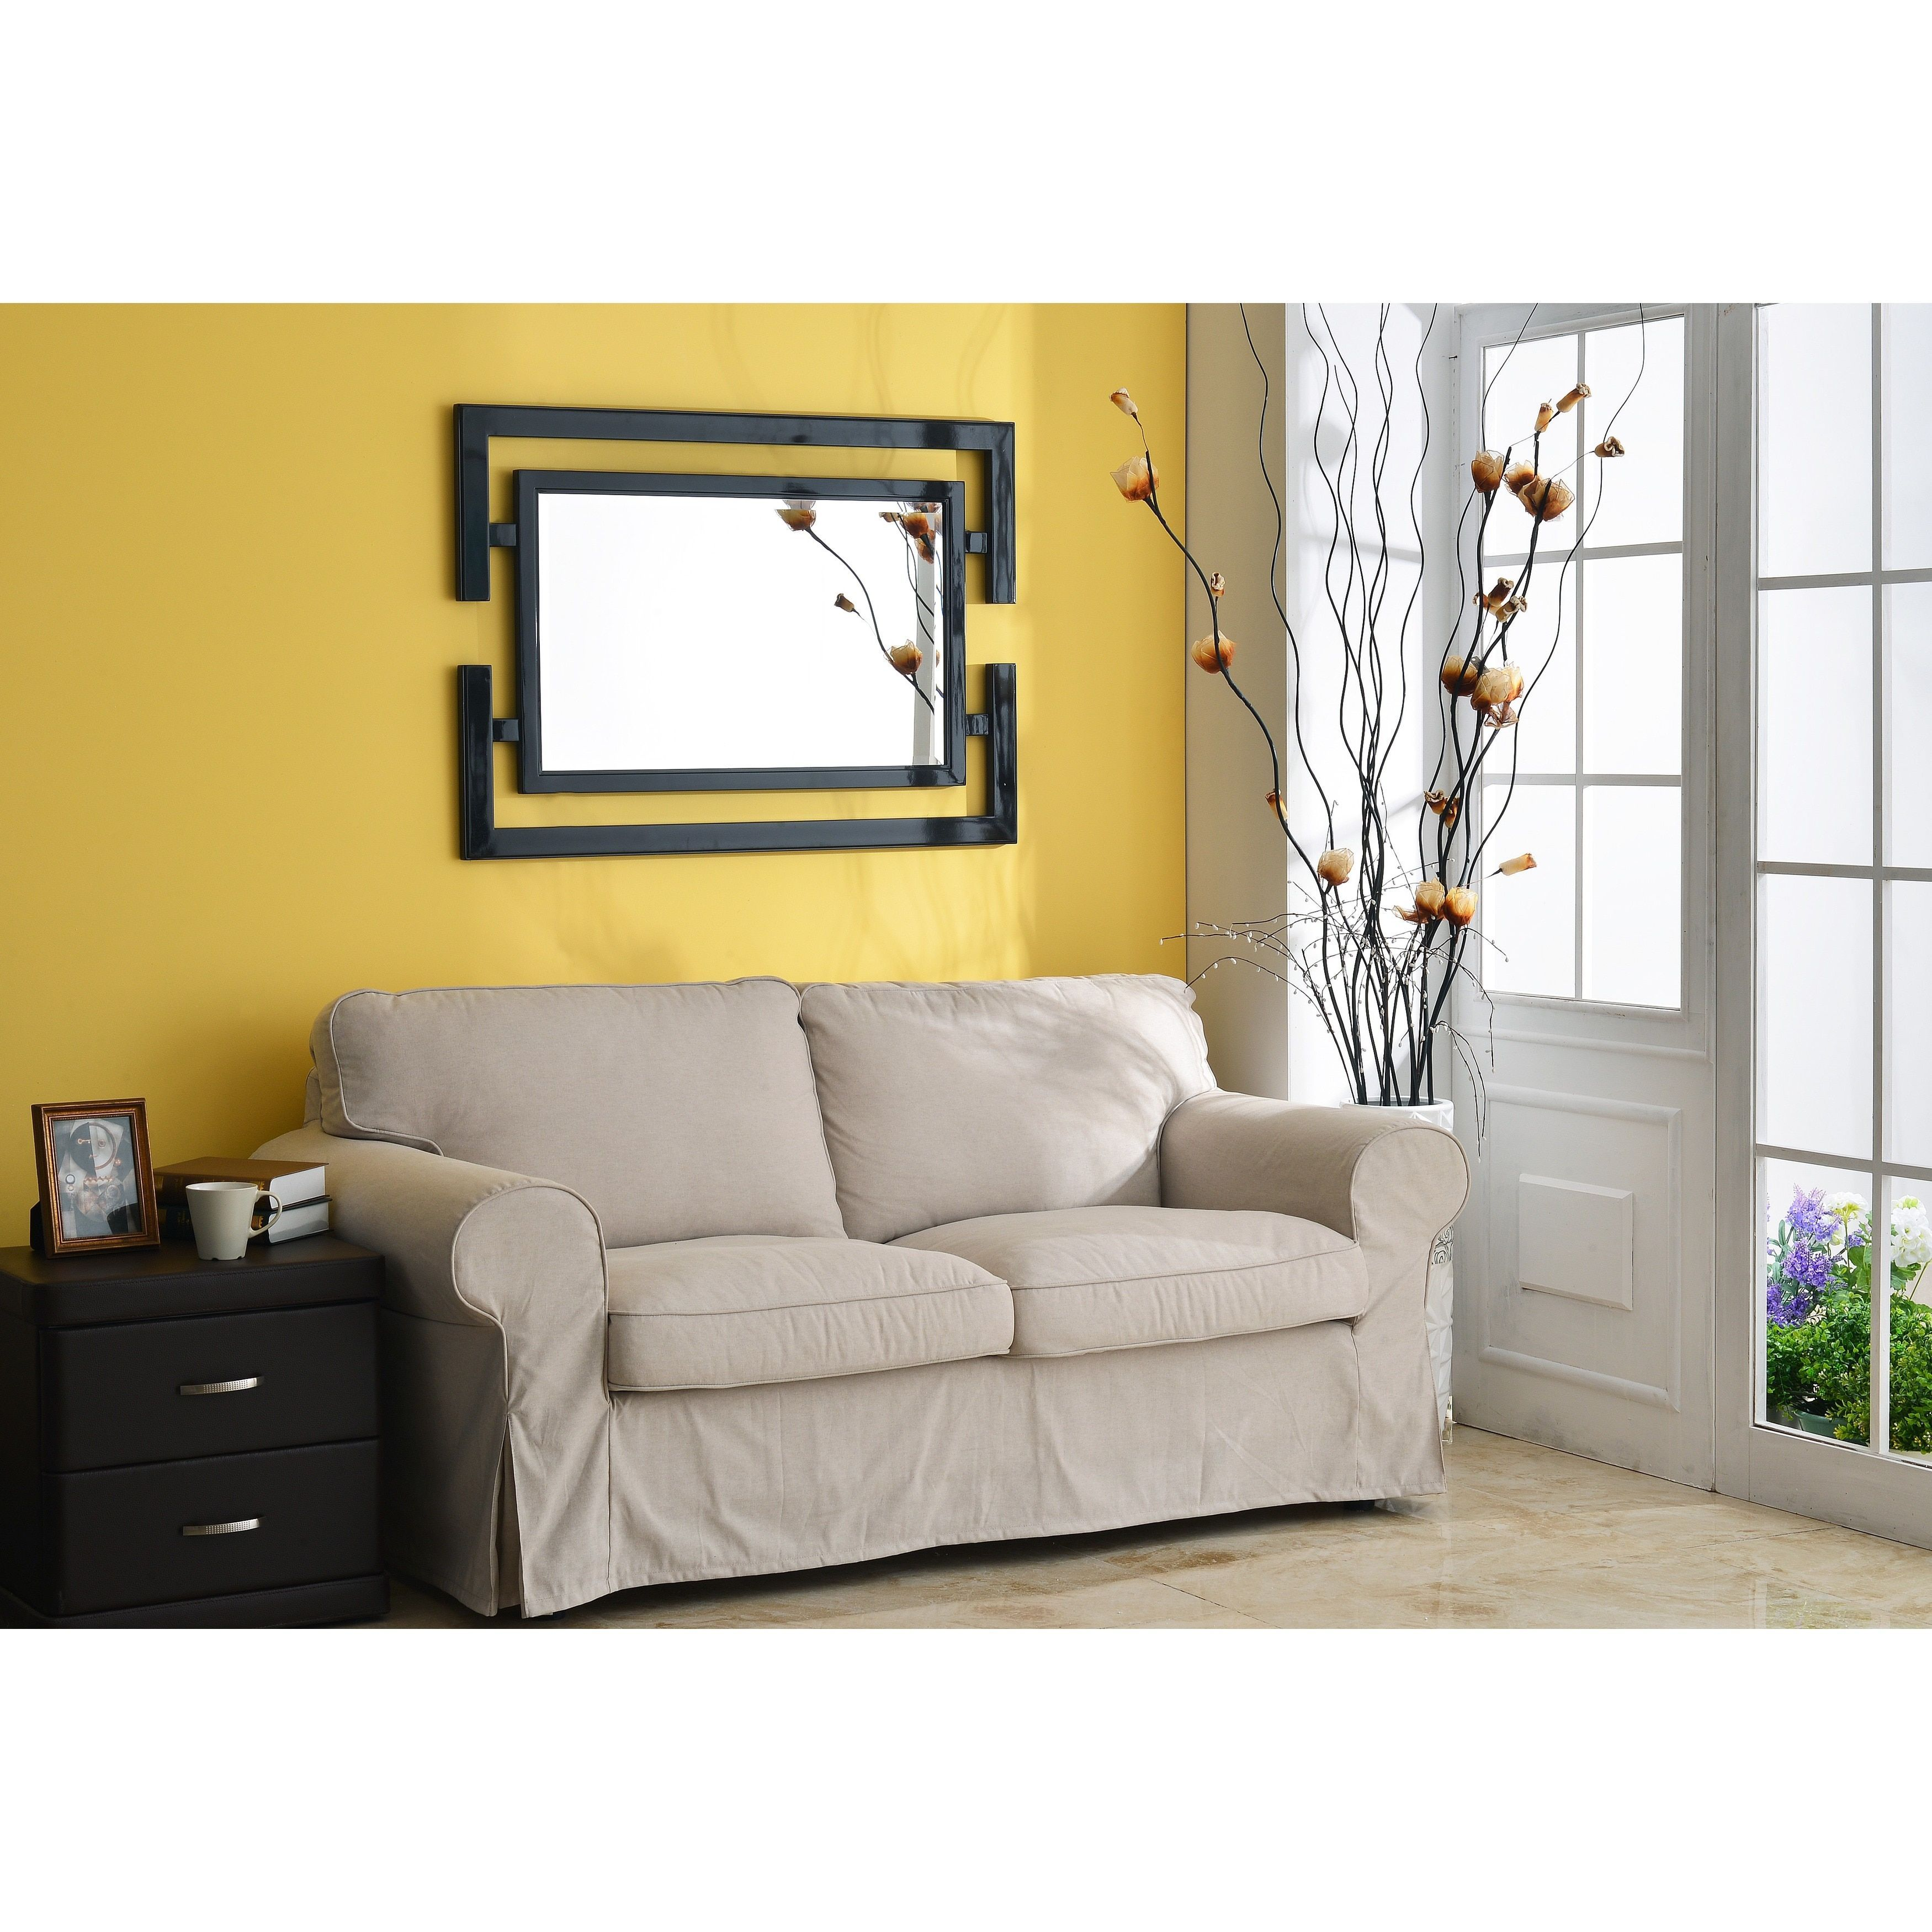 Attractive Wall Mirrors Decorative Pictures - Wall Art Collections ...